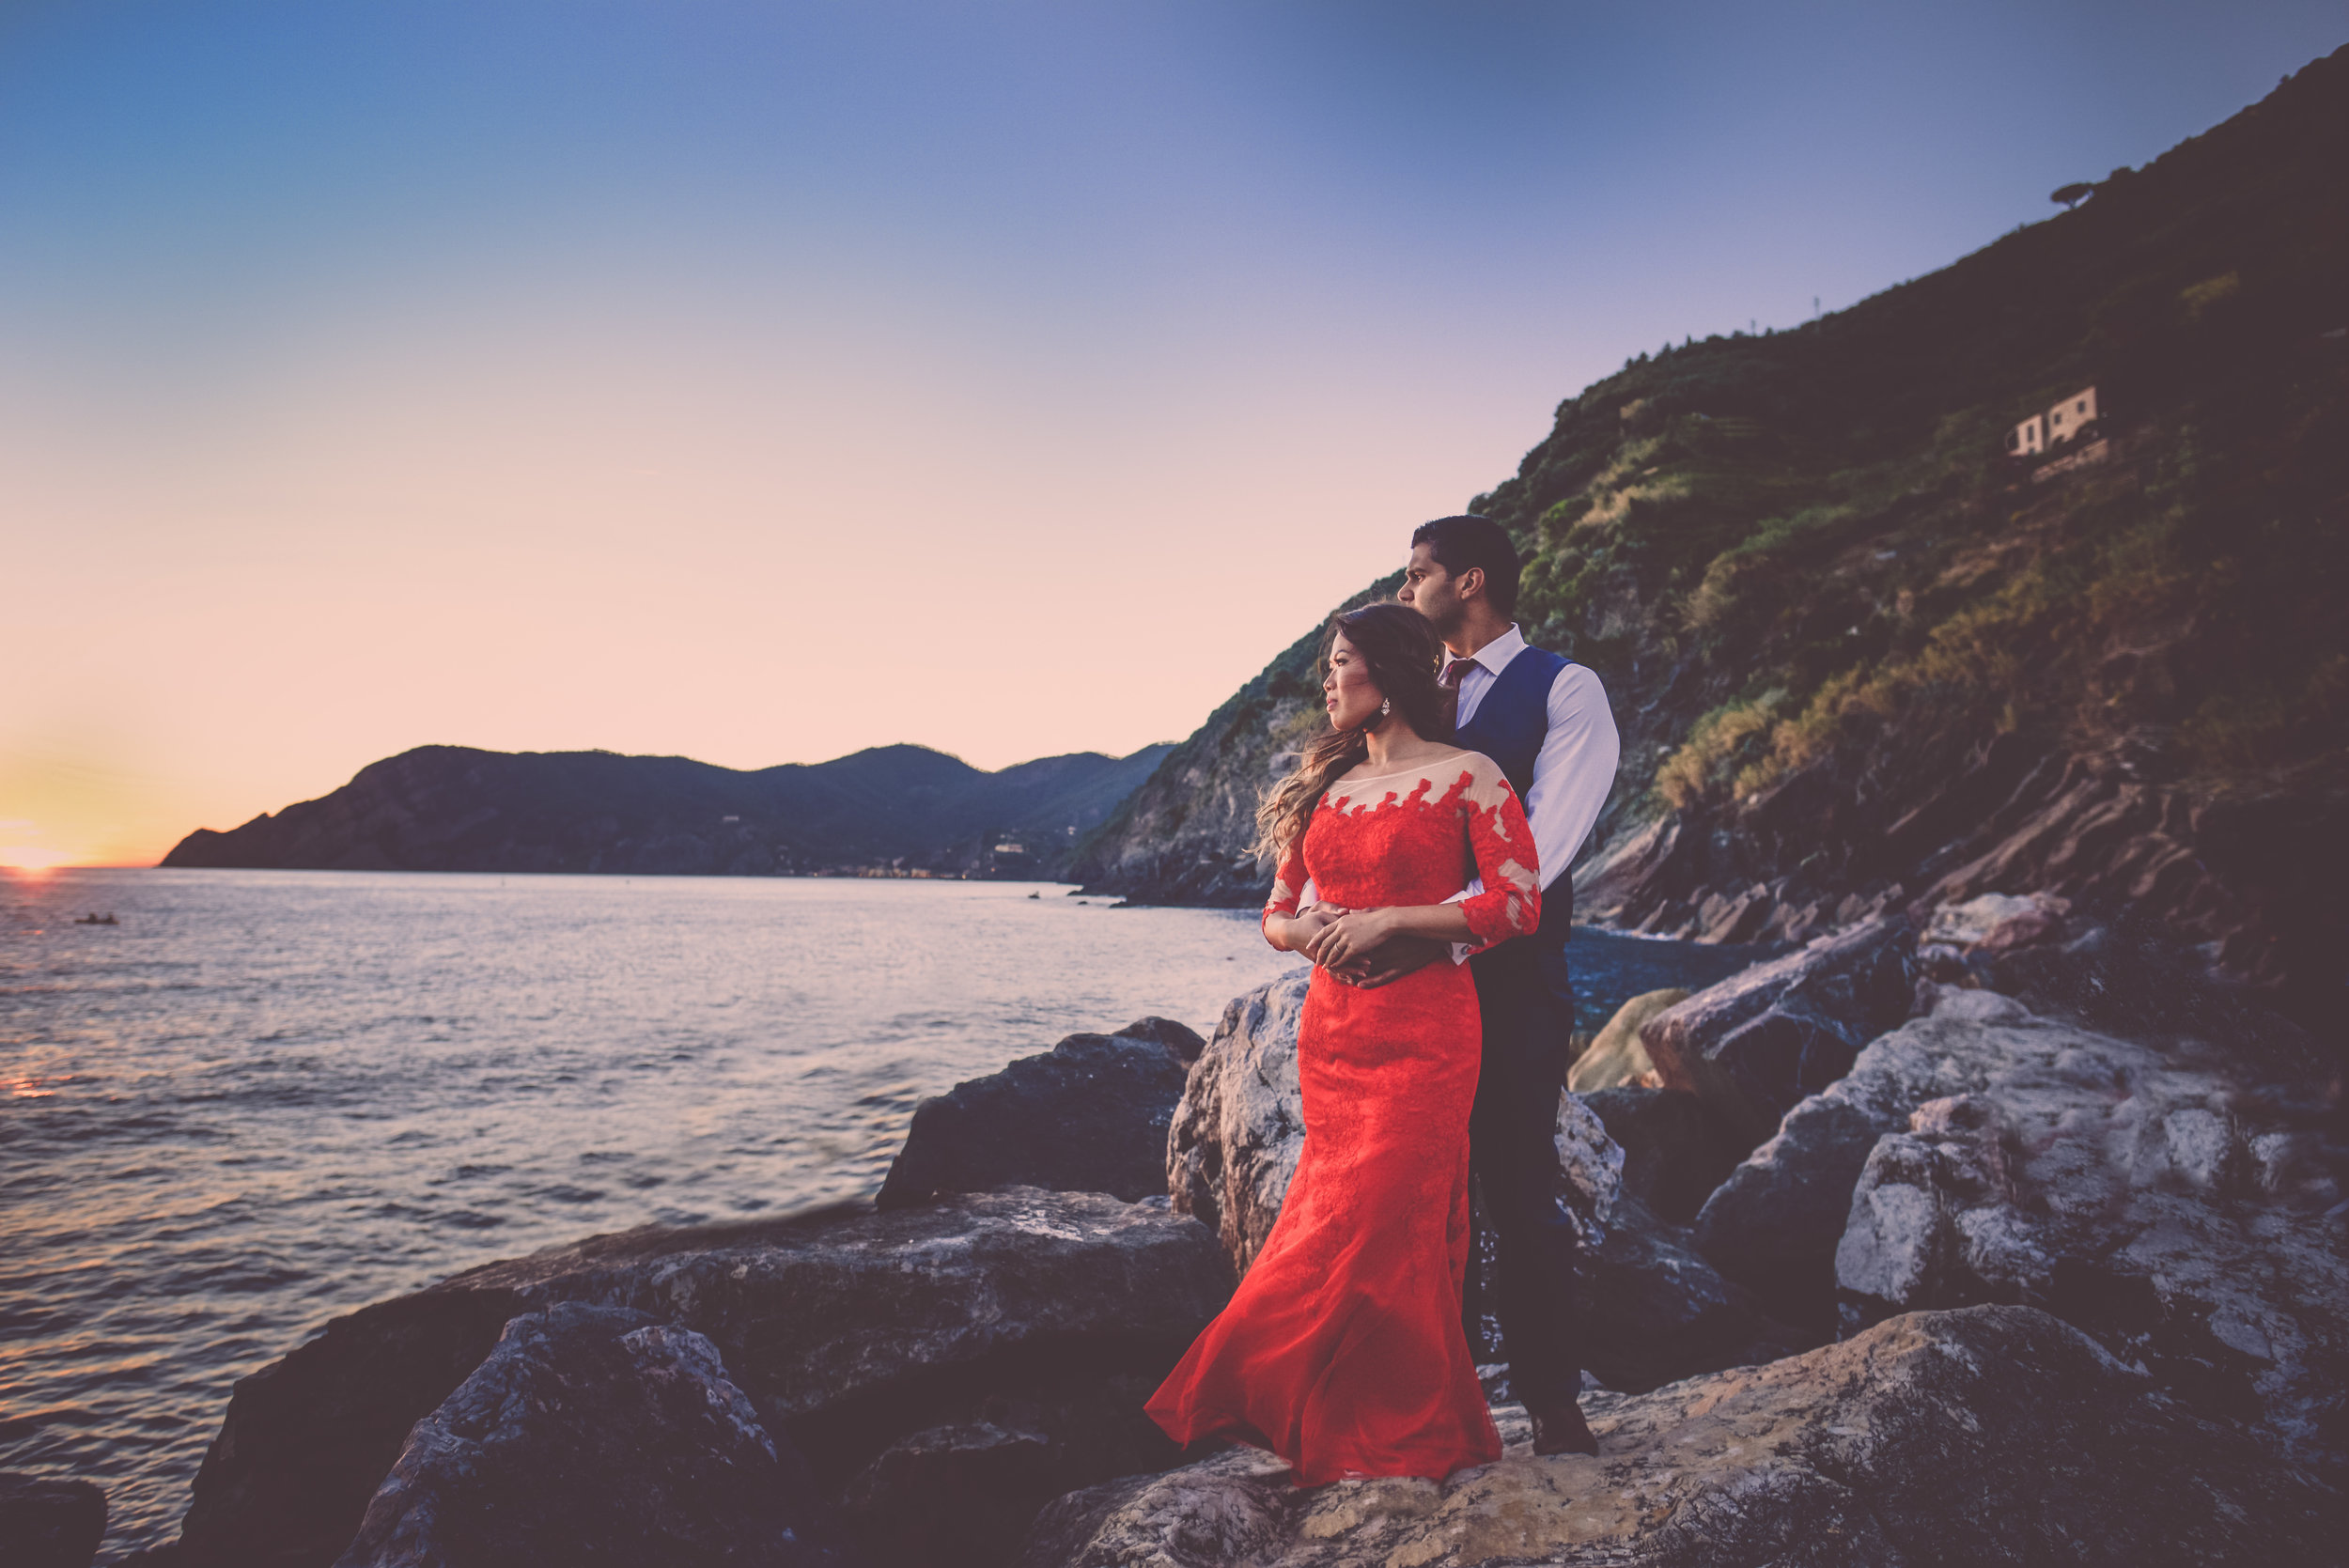 Italy Wedding Photography, Meridian Photography, Northern Michigan Wedding Photographers